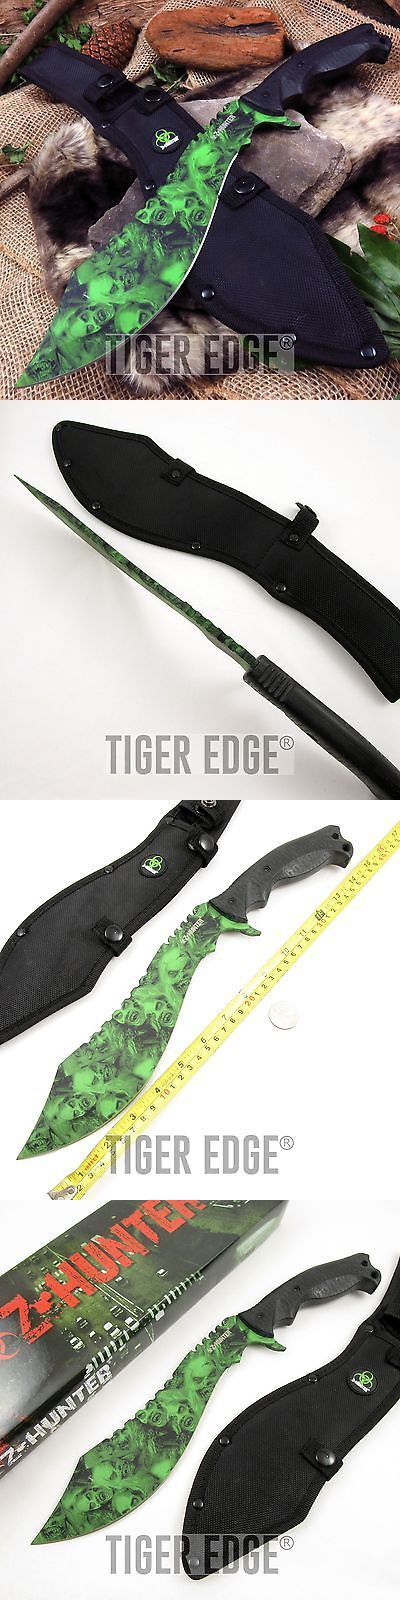 Other Camping Knives and Tools 100237: New! 15 Z-Hunter Green Zombie Skull Heavy Tactical Machete Fixed-Blade Knife -> BUY IT NOW ONLY: $31.27 on eBay!